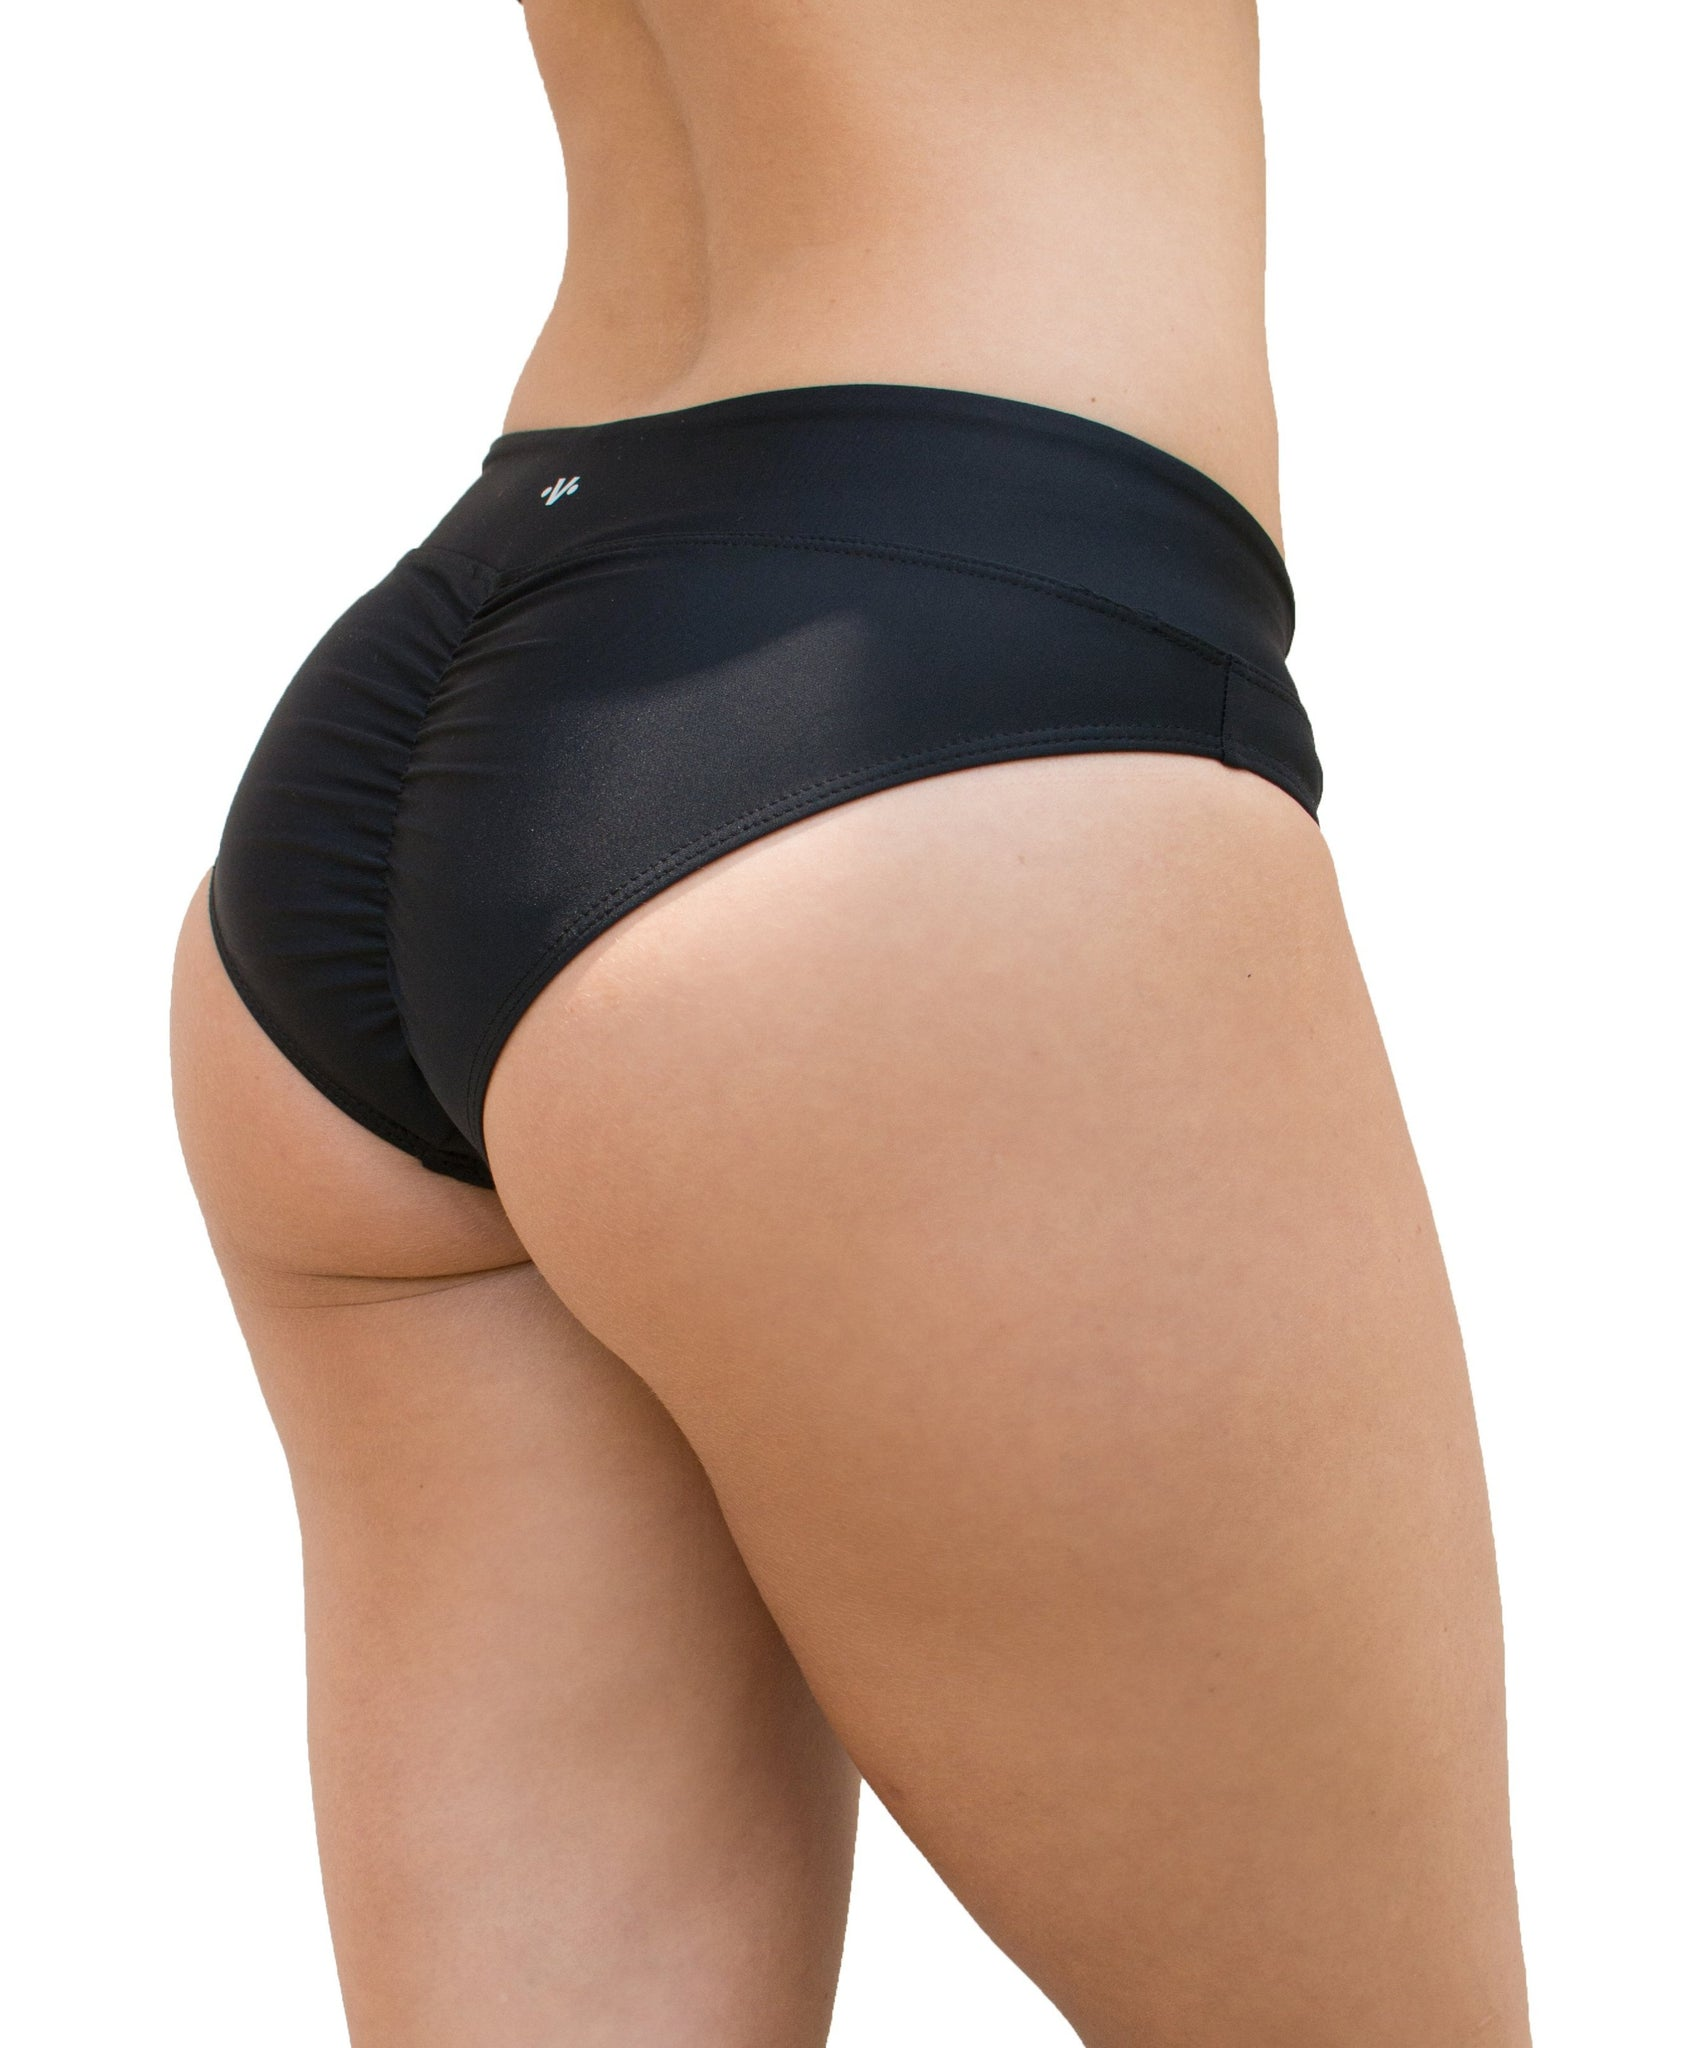 Pole Wear Shorts VEKEKR  Basixx Black Short